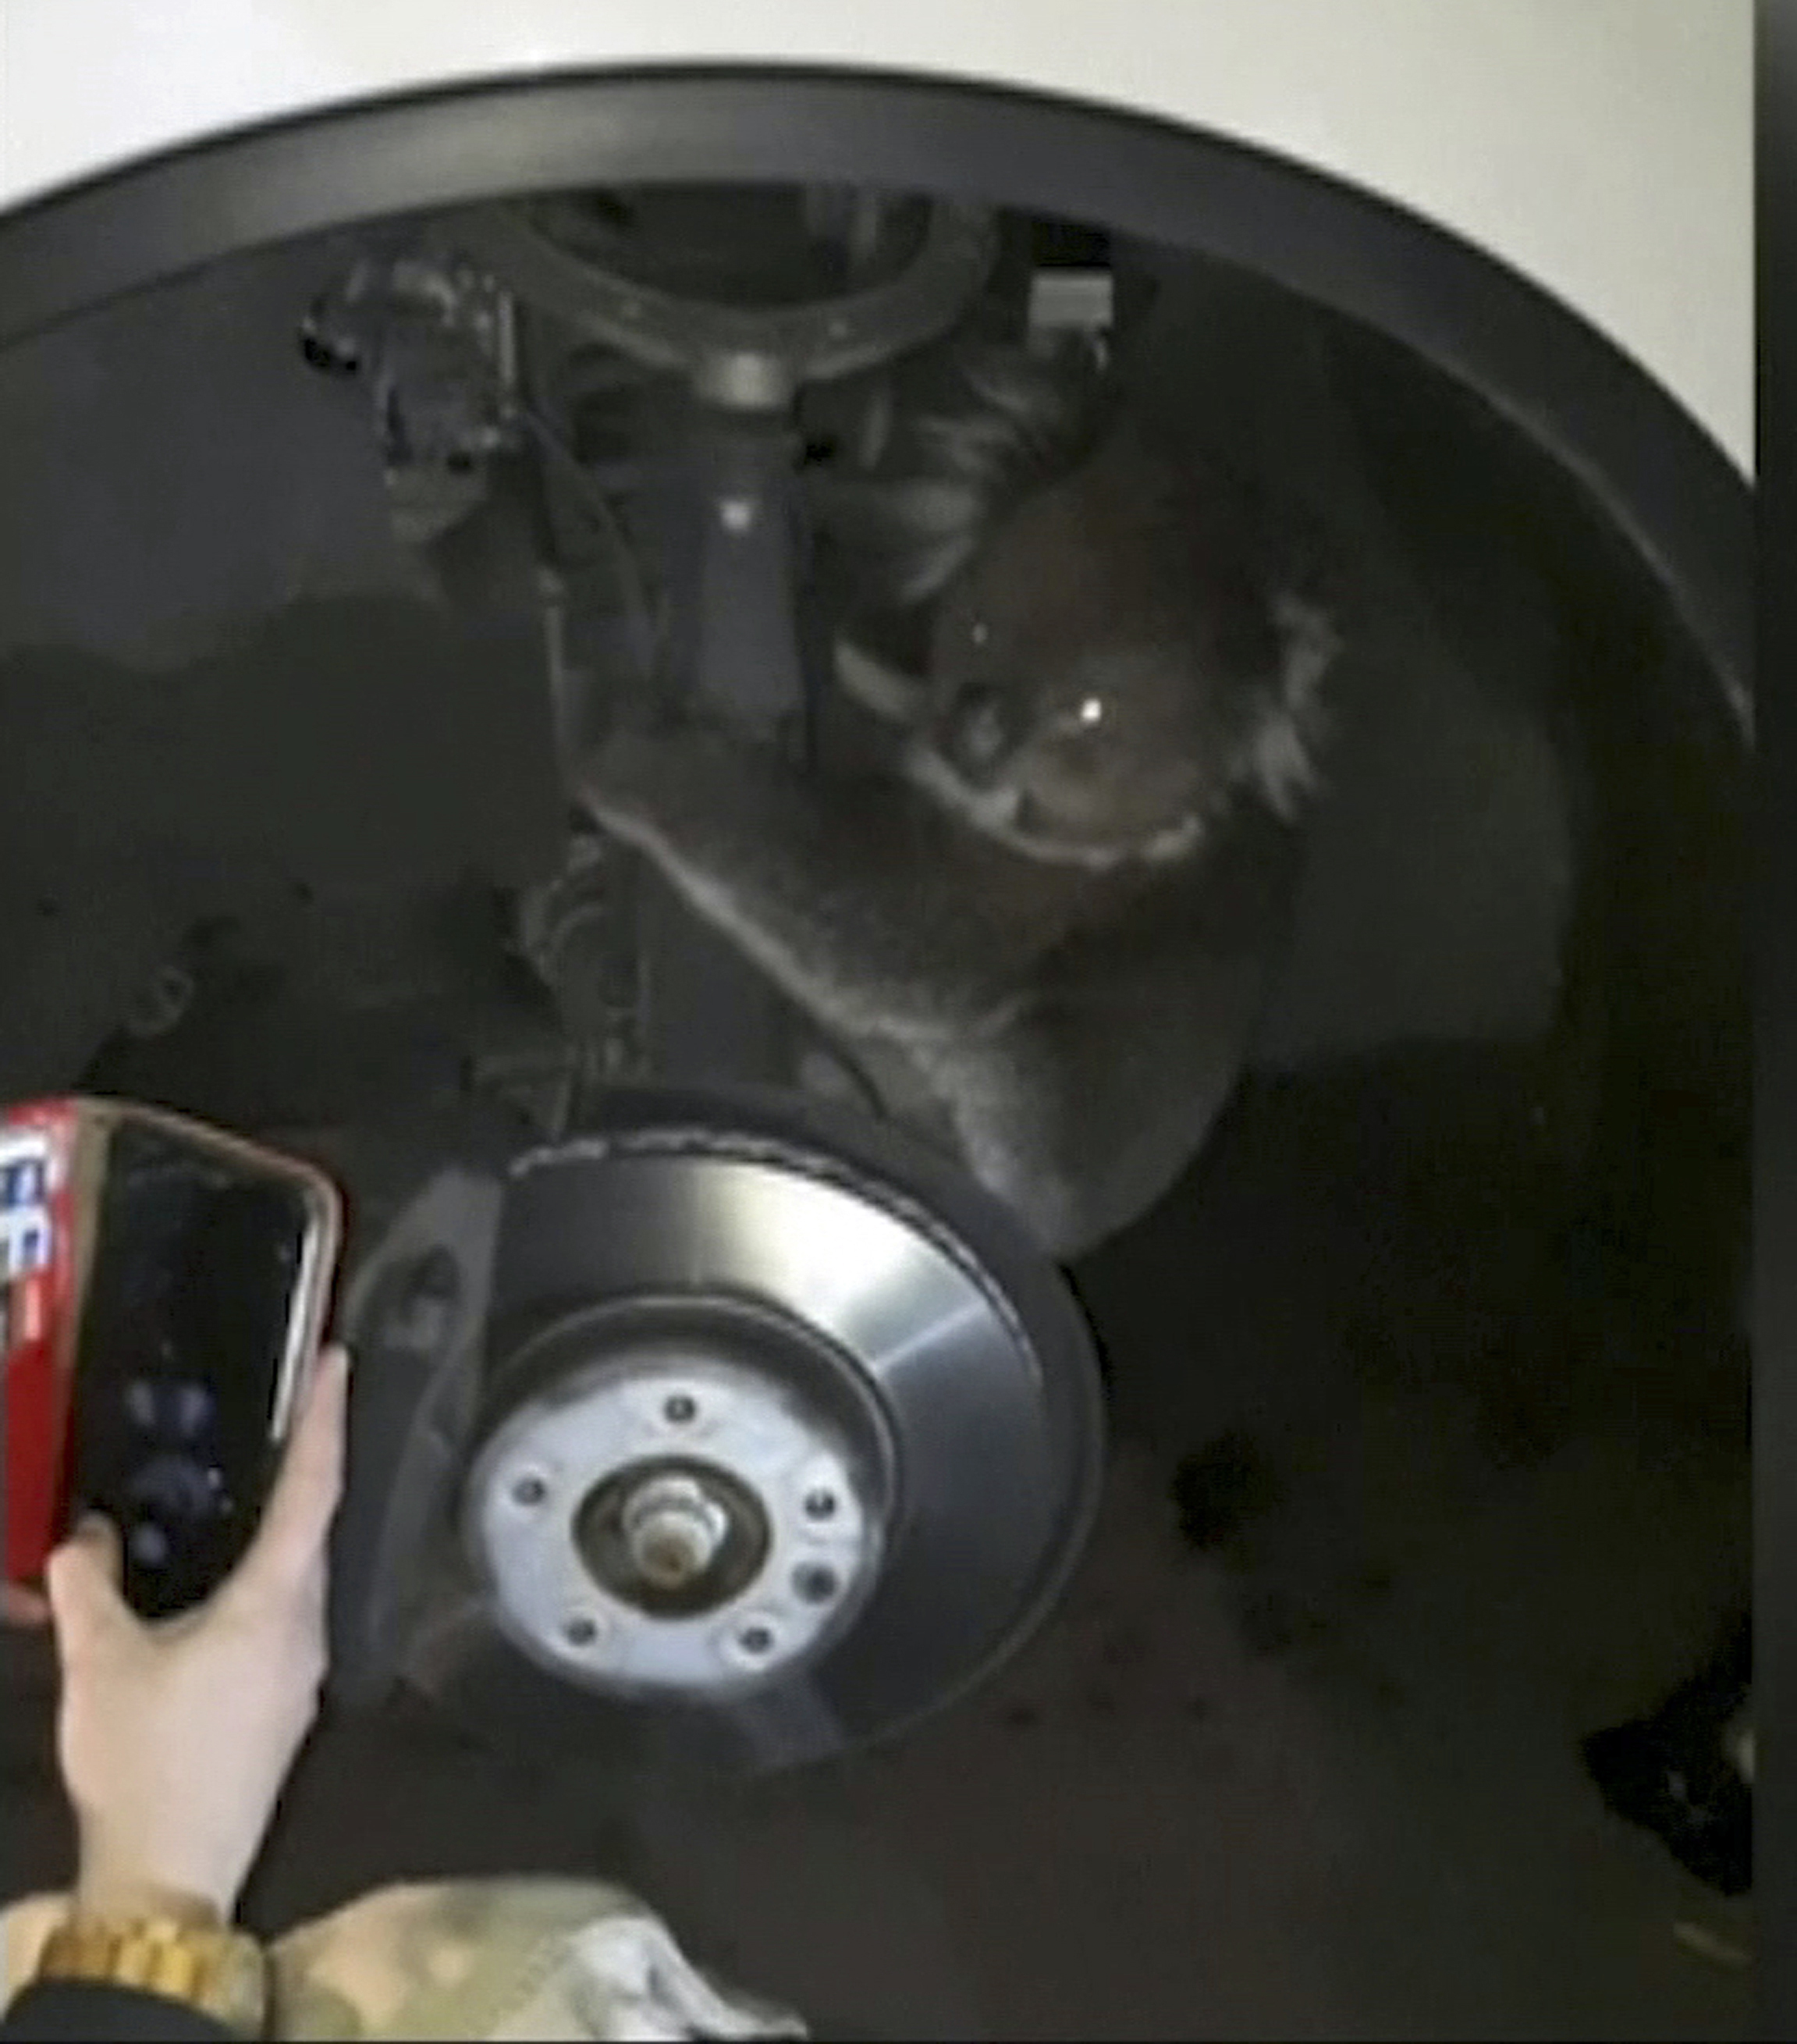 Koala survives 10-mile Australia trip in wheel arch